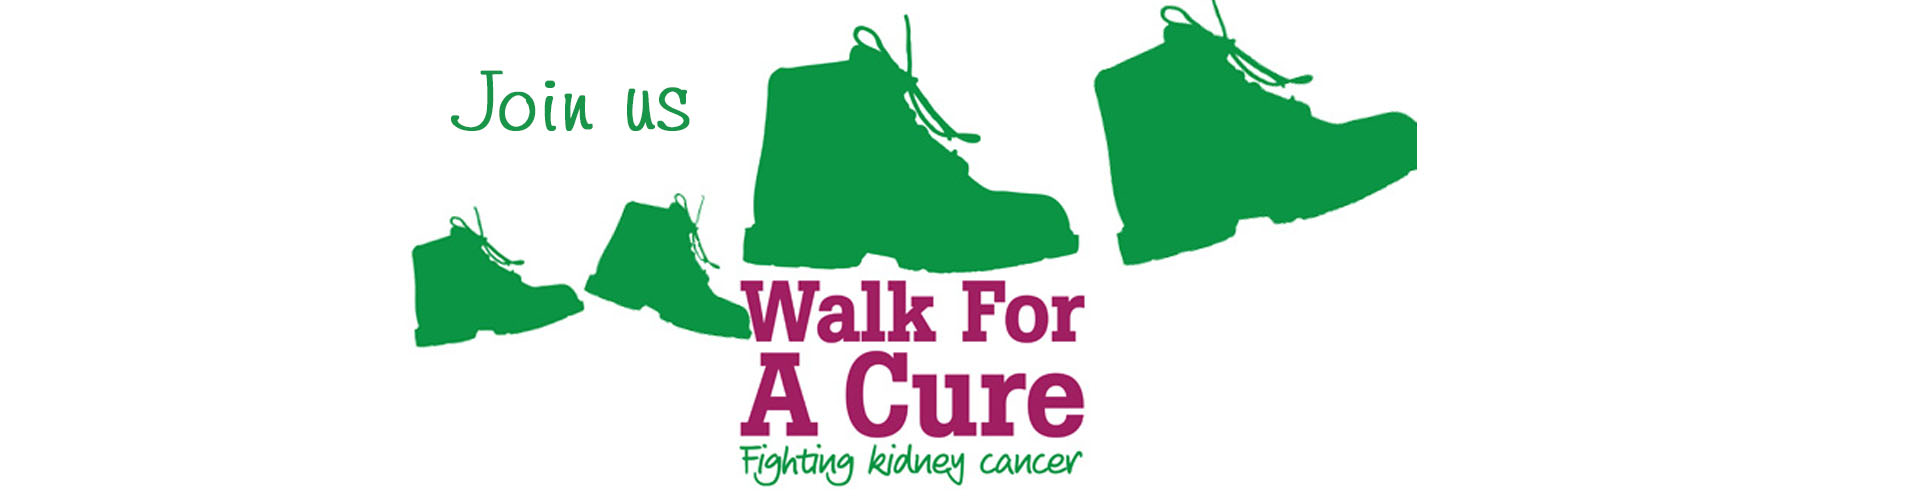 Walk for a cure